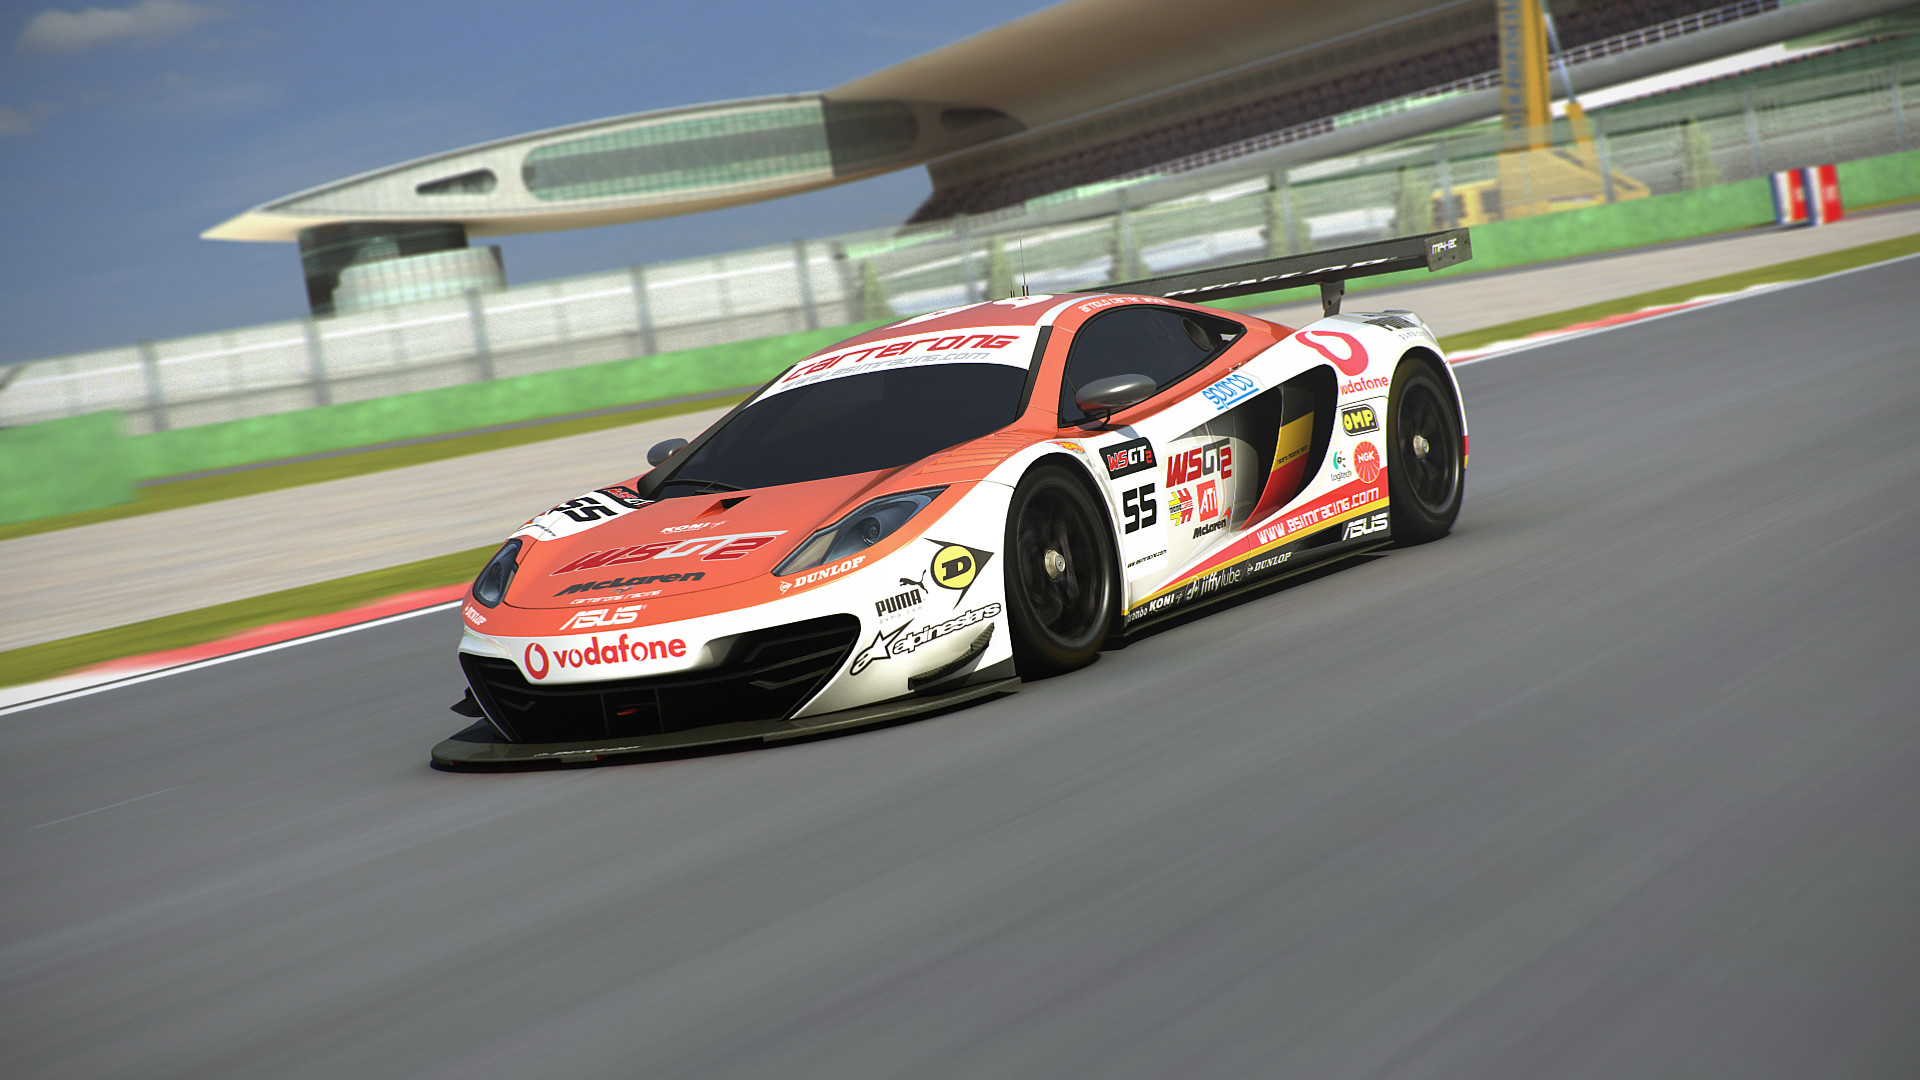 MP4-12C_Shanghai_1_Action_PP